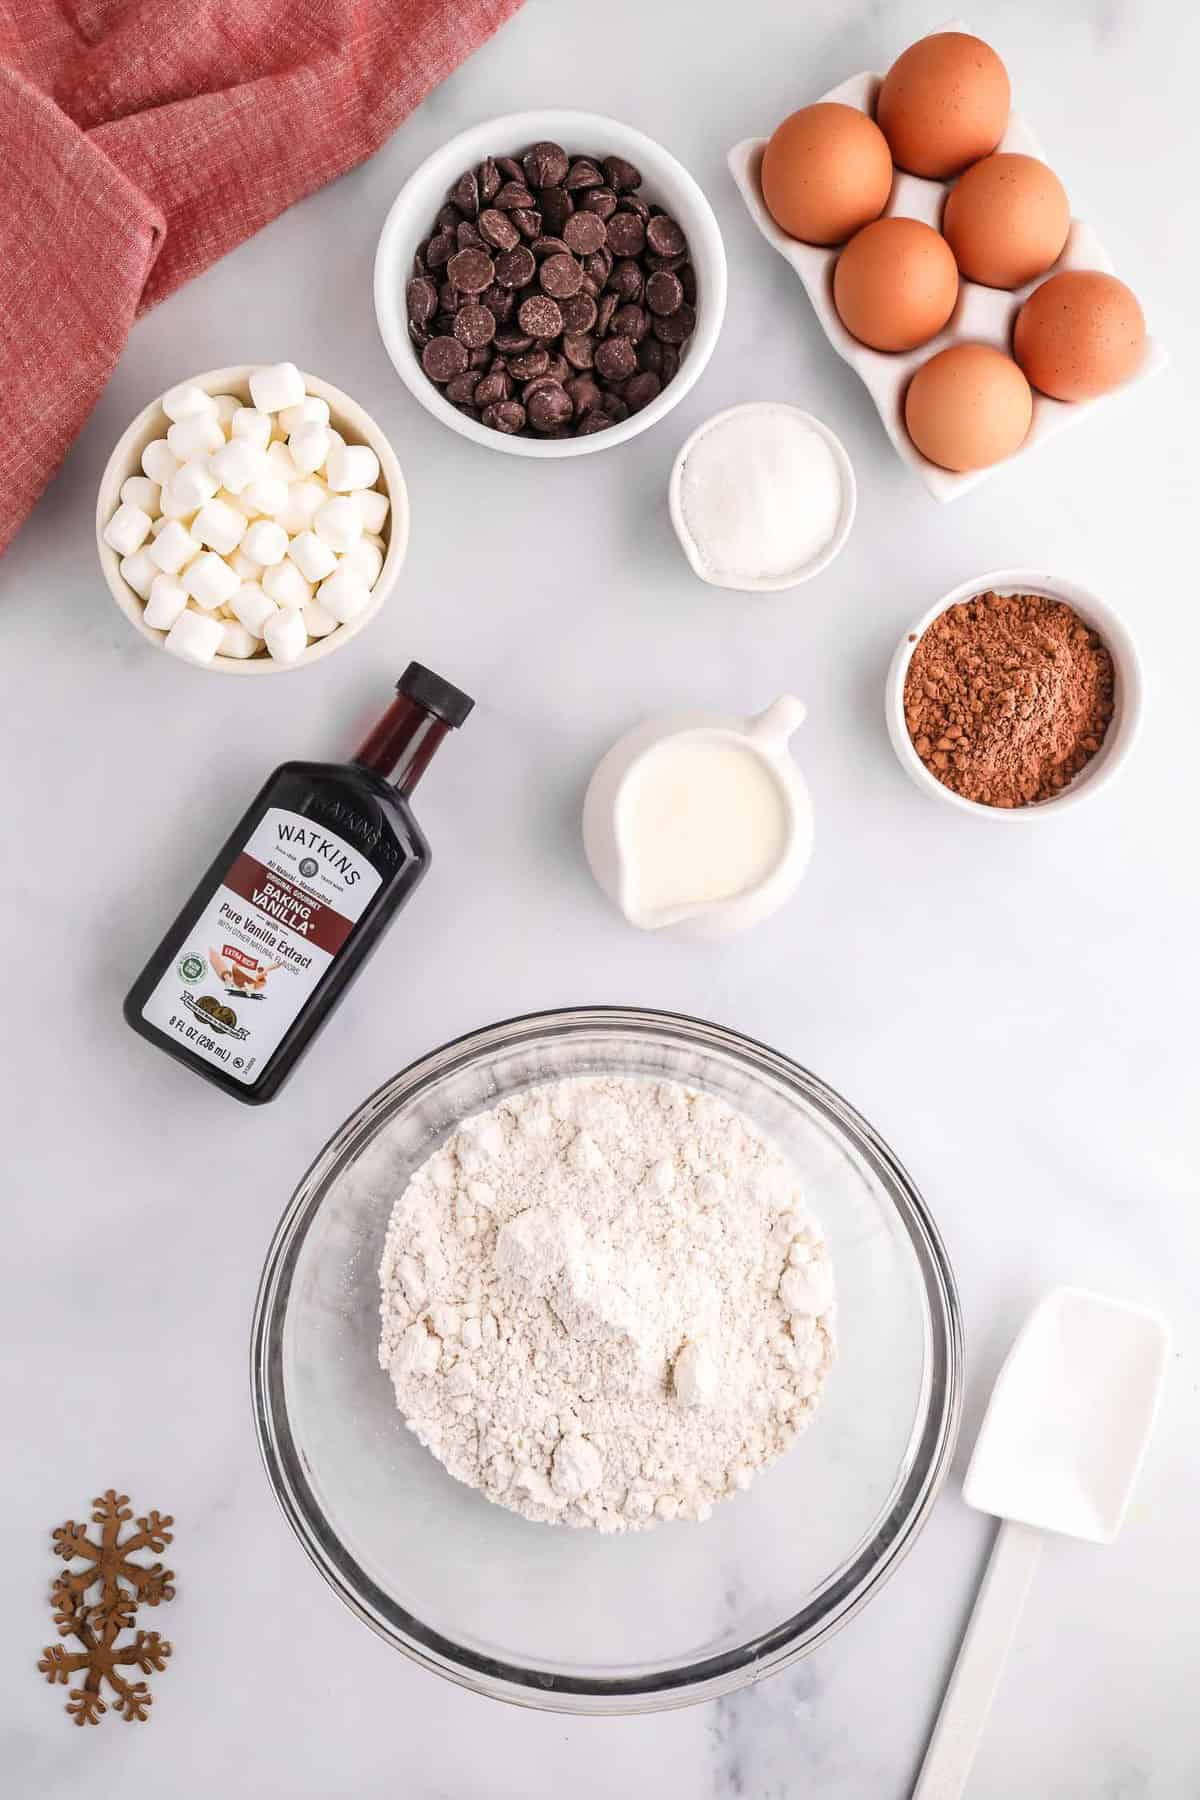 Overhead view of ingredients need for hot chocolate pancakes.